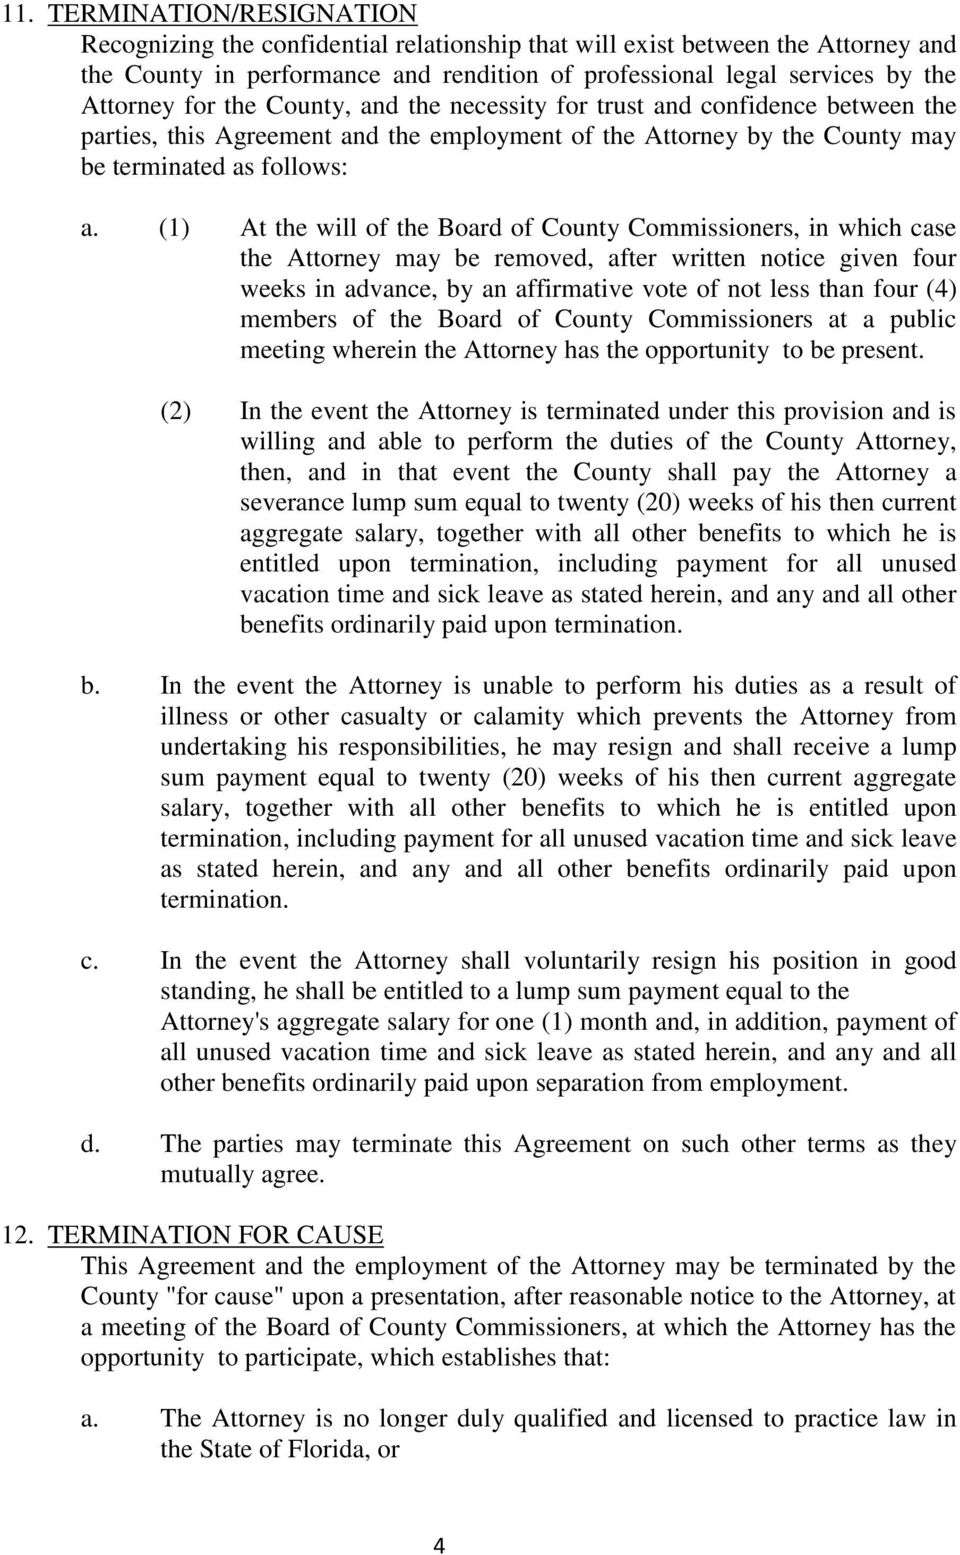 (1) At the will of the Board of County Commissioners, in which case the Attorney may be removed, after written notice given four weeks in advance, by an affirmative vote of not less than four (4)